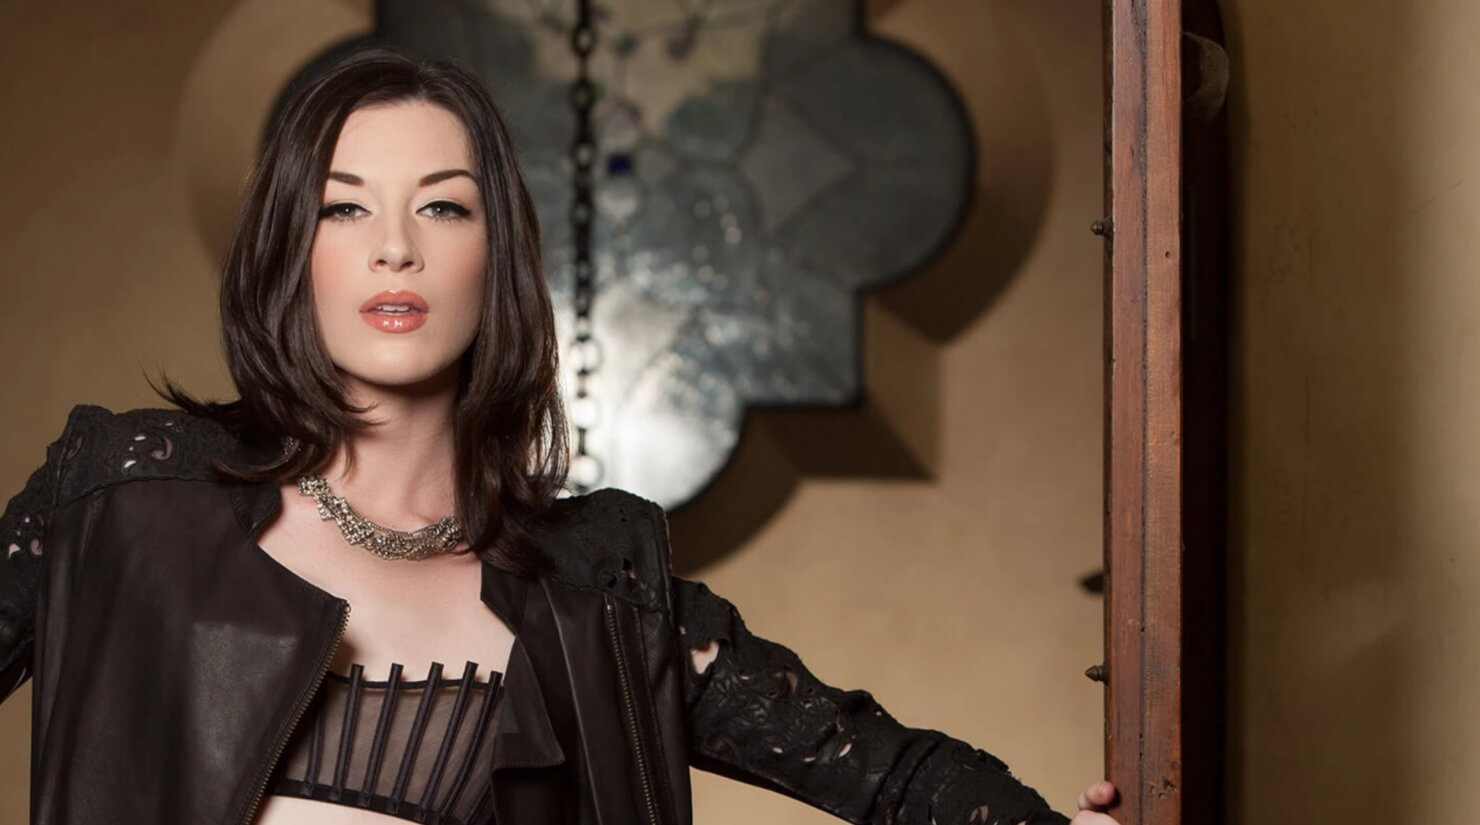 Fleshlight Girl Stoya